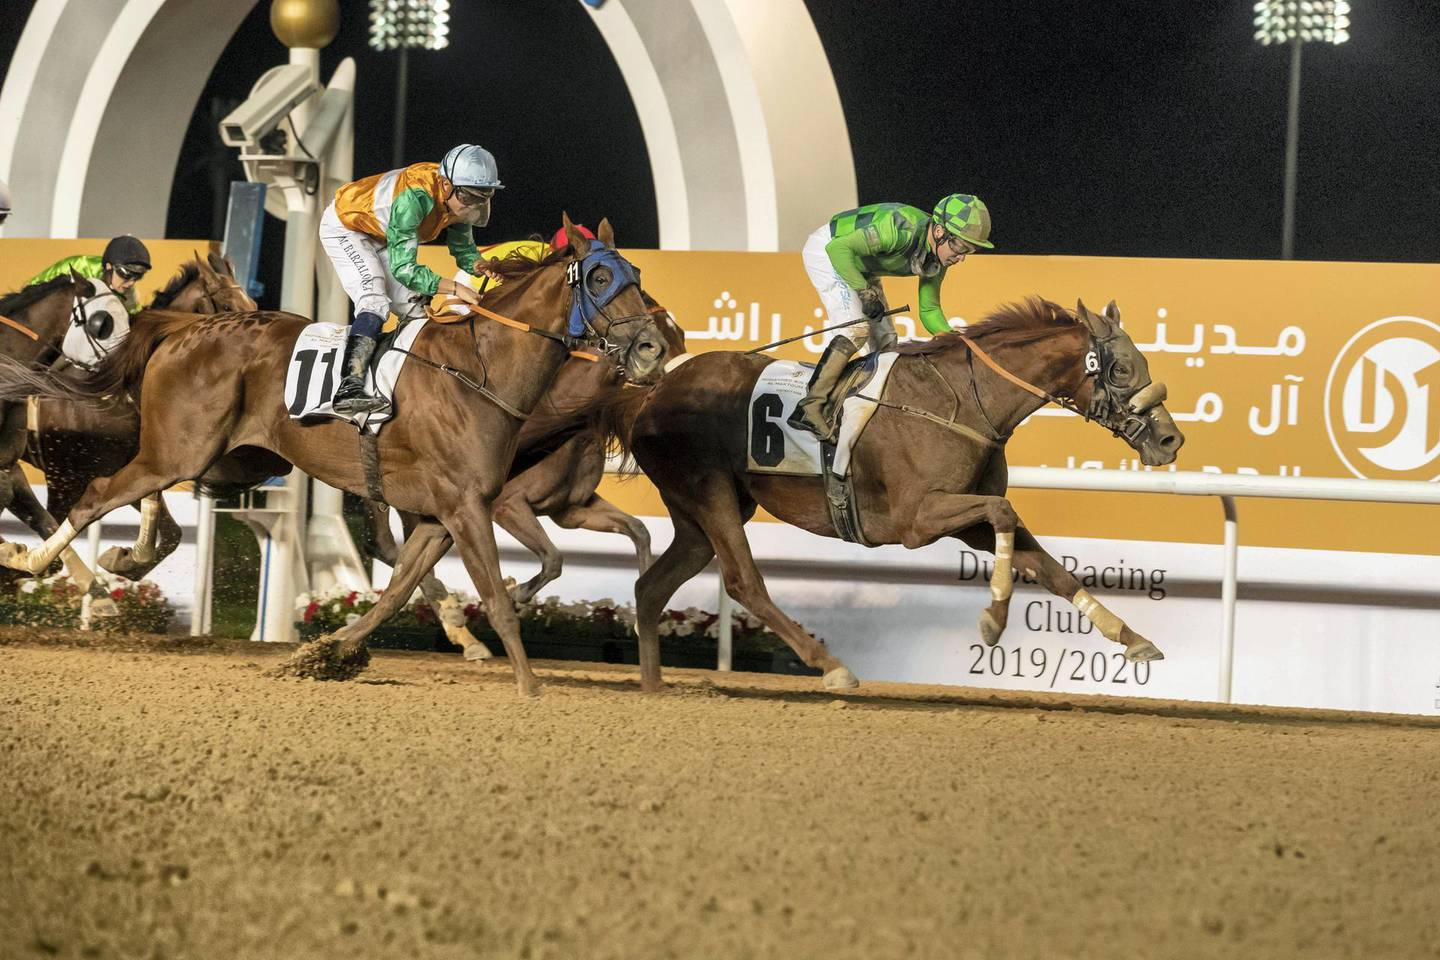 DUBAI, UNITED ARAB EMIRATES. 04 JANUARY 2020. Fourth Race of the Seventh Race Meeting, District One Lagoon Run. Winner Nr 6, Immortalised (GB) 6yrs ridden by Tadhg O'Shea. (Photo: Antonie Robertson/The National) Journalist: Amith Passela. Section: Sport.